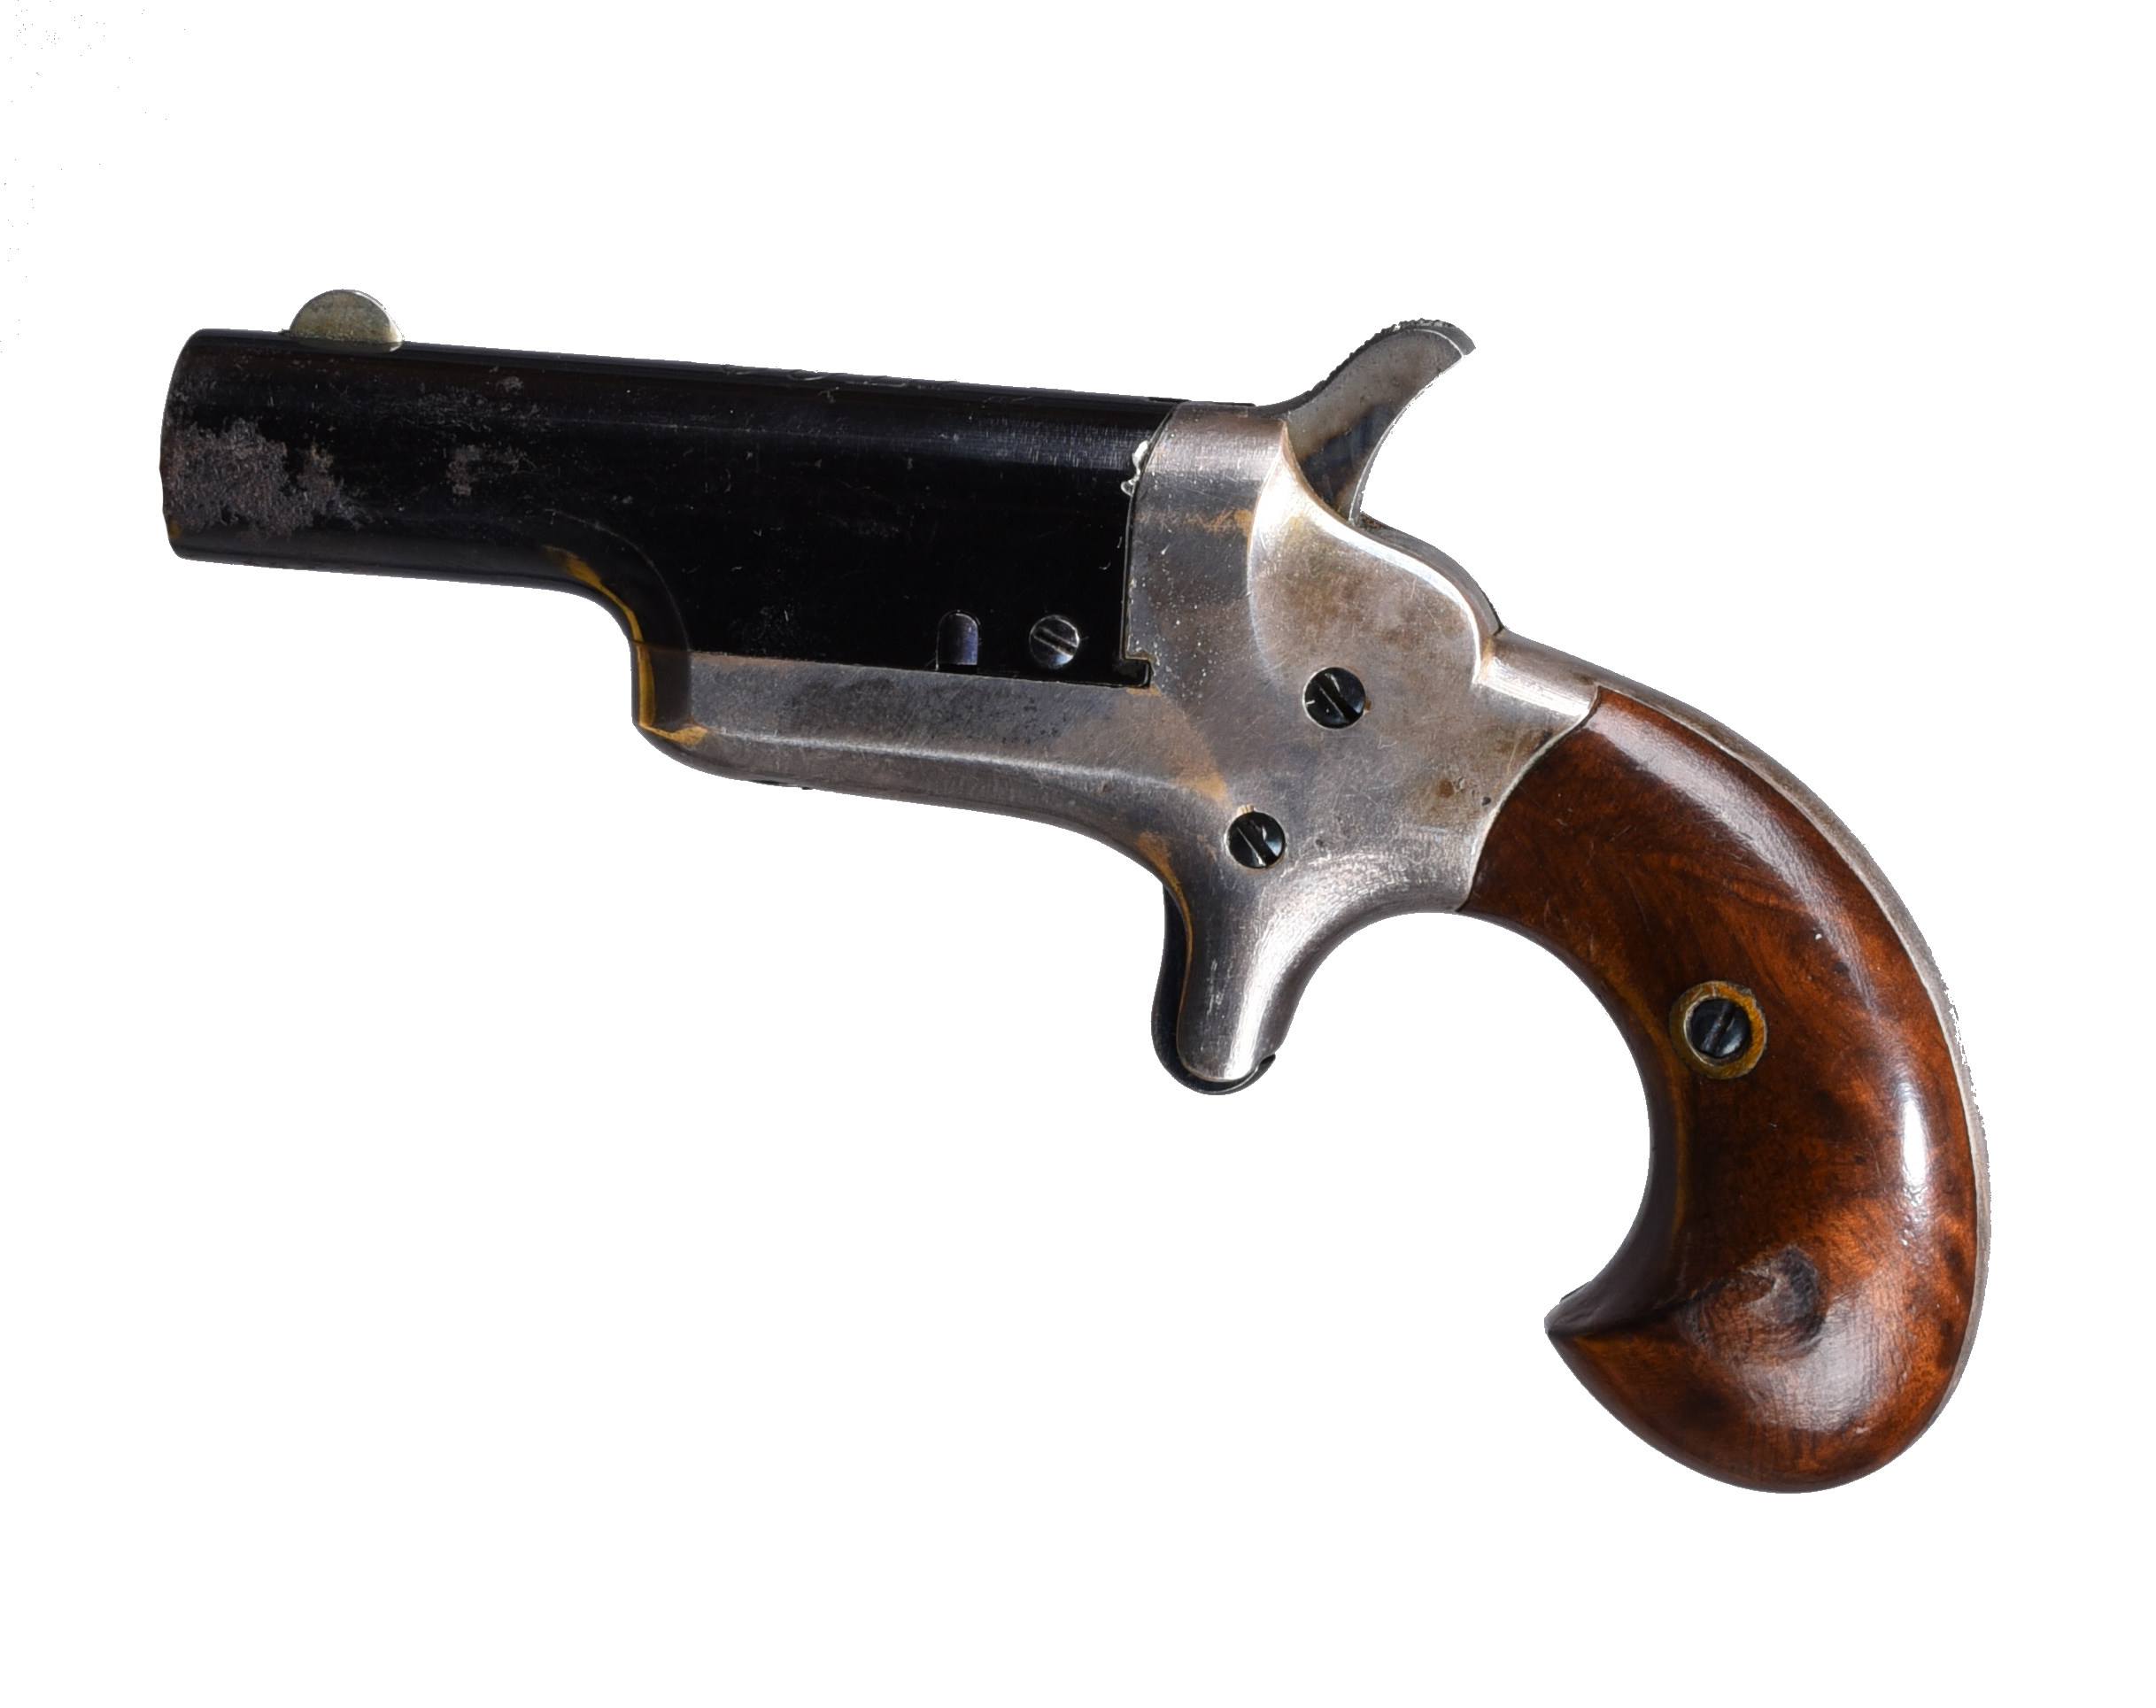 A Colt .41 rimfire Thuer patent 'Third Model' derringer, 2.5 in. blued barrel with foresight and - Image 4 of 4